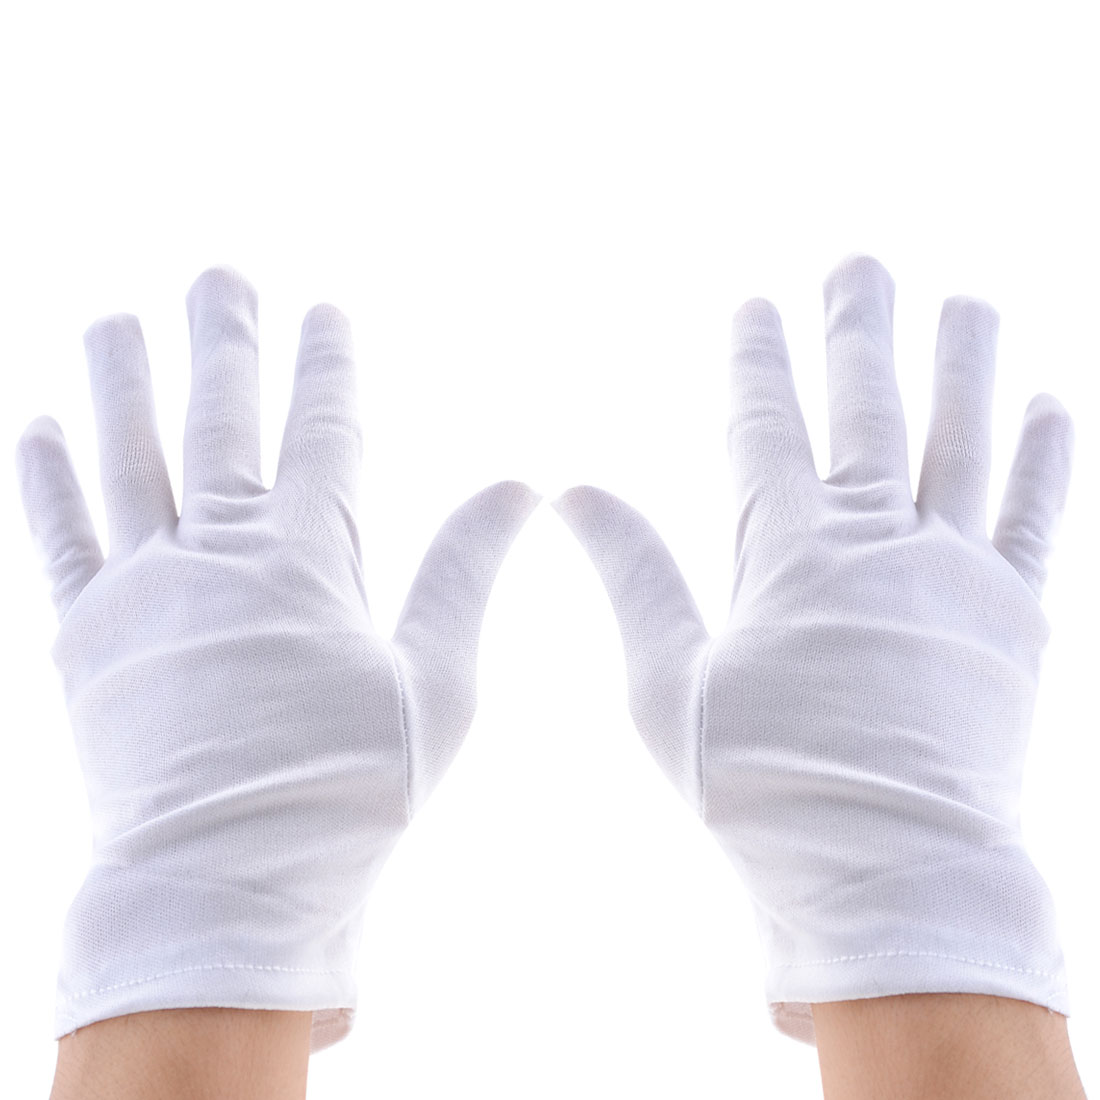 2 Pairs White Anti-static Full Finger Jewelry Watch Inspection Work Gloves